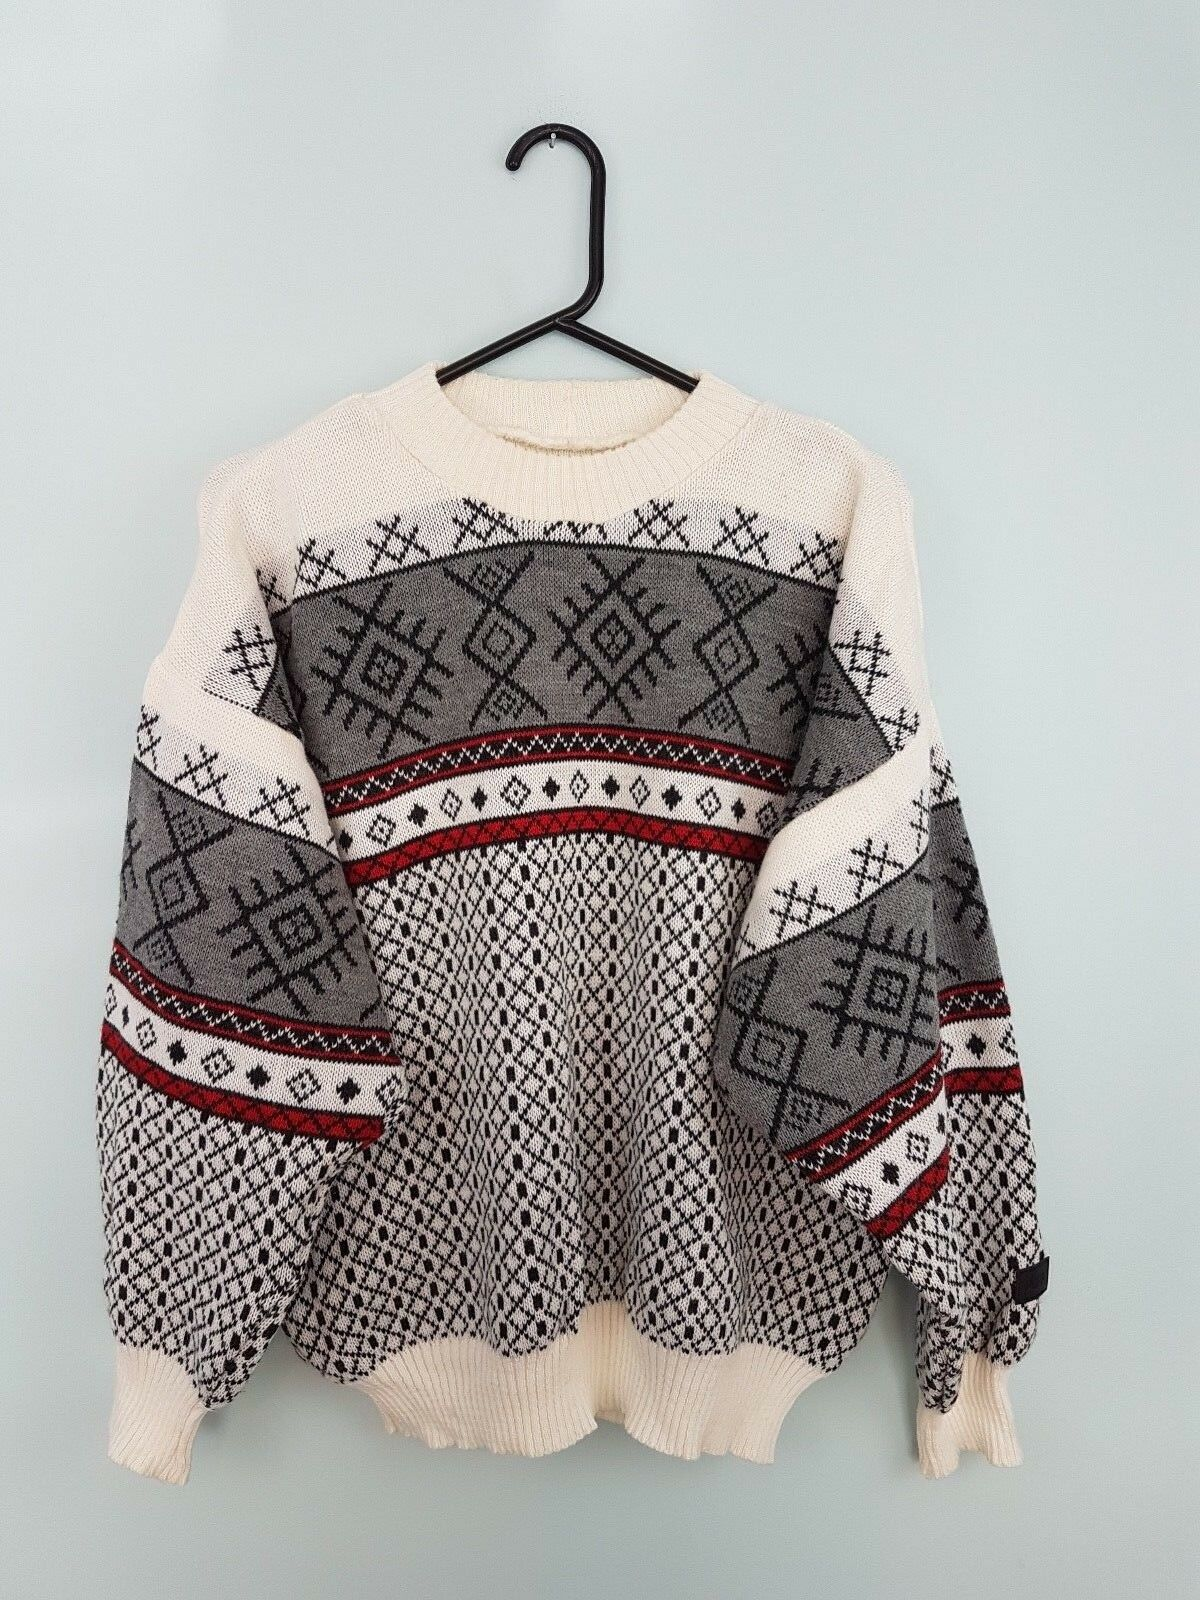 VTG RETRO AZTEC CHUNKY KNIT WINTER ICELANDIC SNOWFLAKE SWEATSHIRT JUMPER UK L